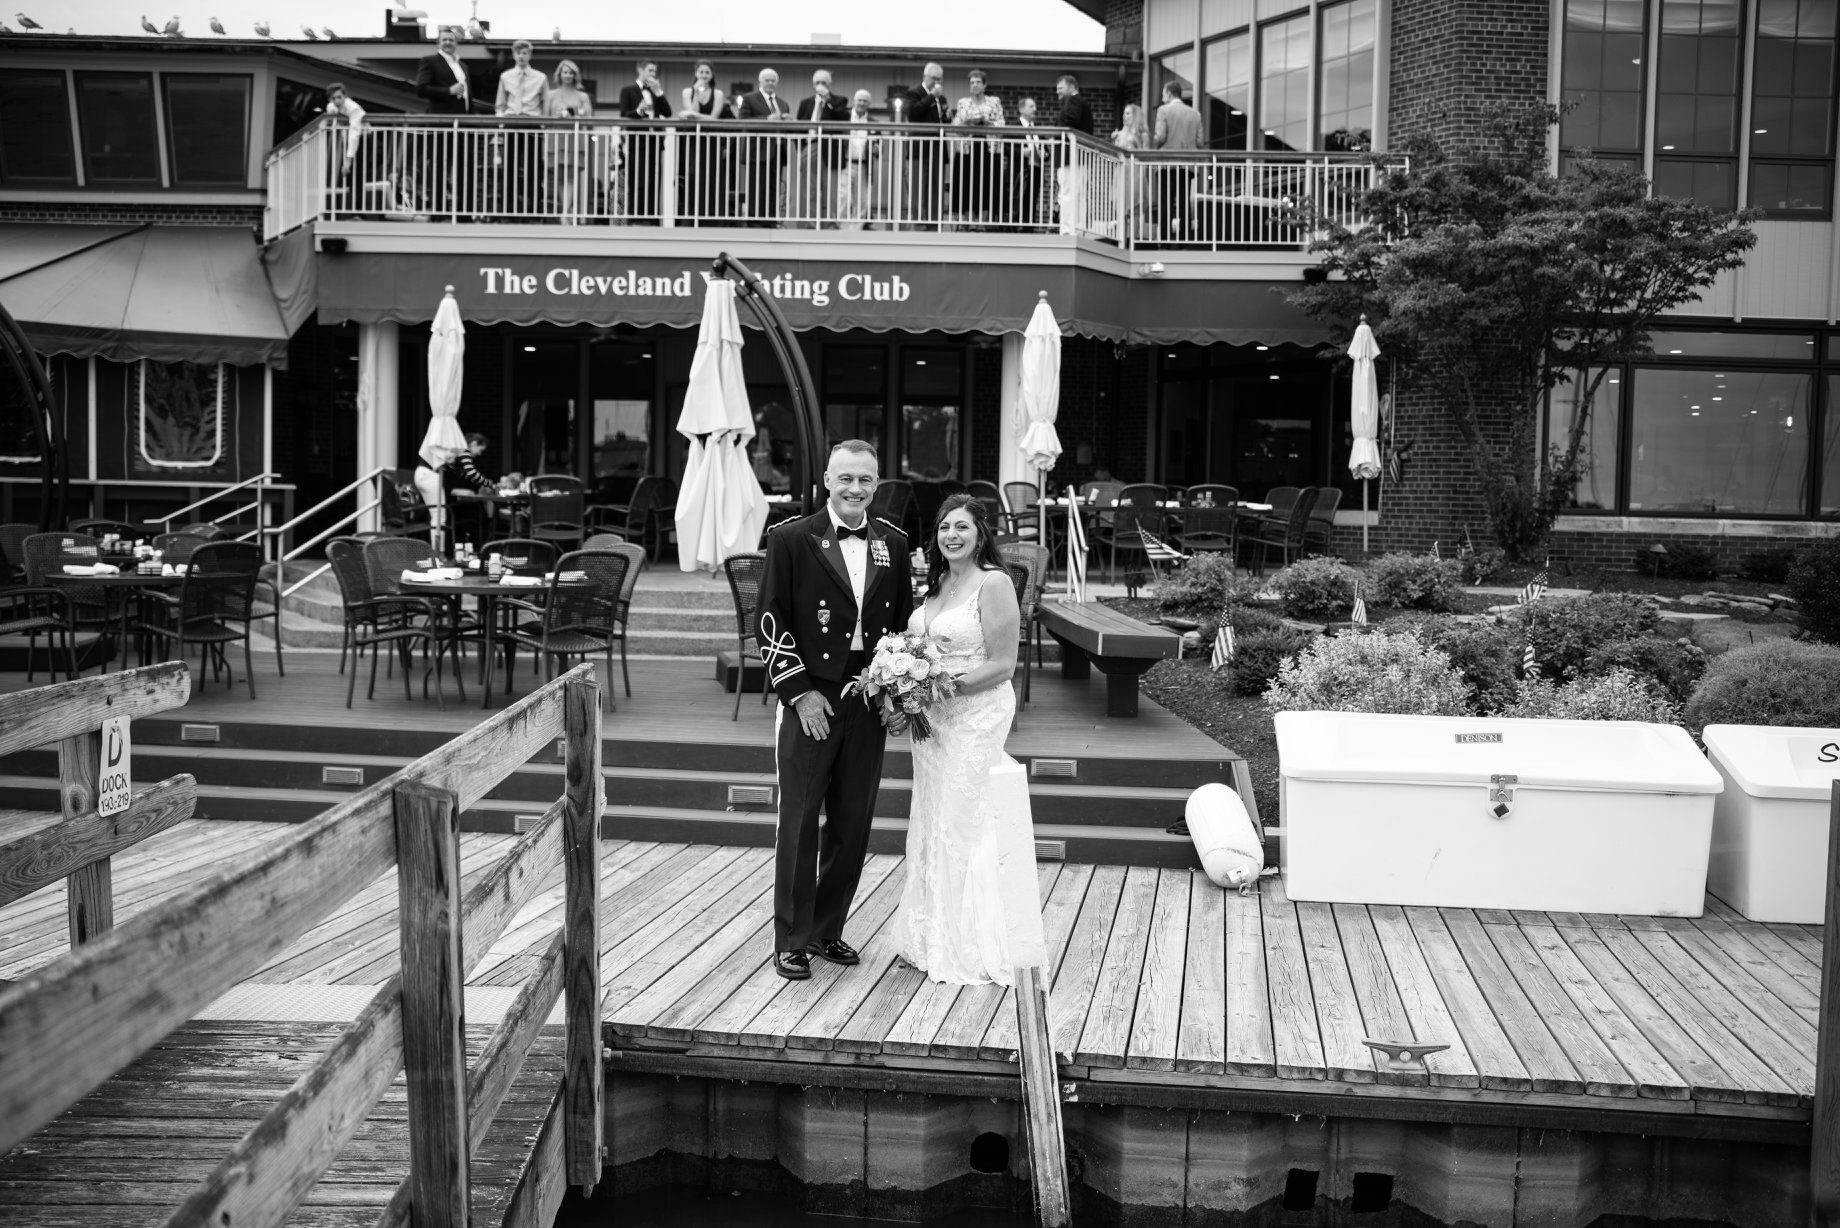 outdoor wedding, Cleveland Yachting Club, Ohio